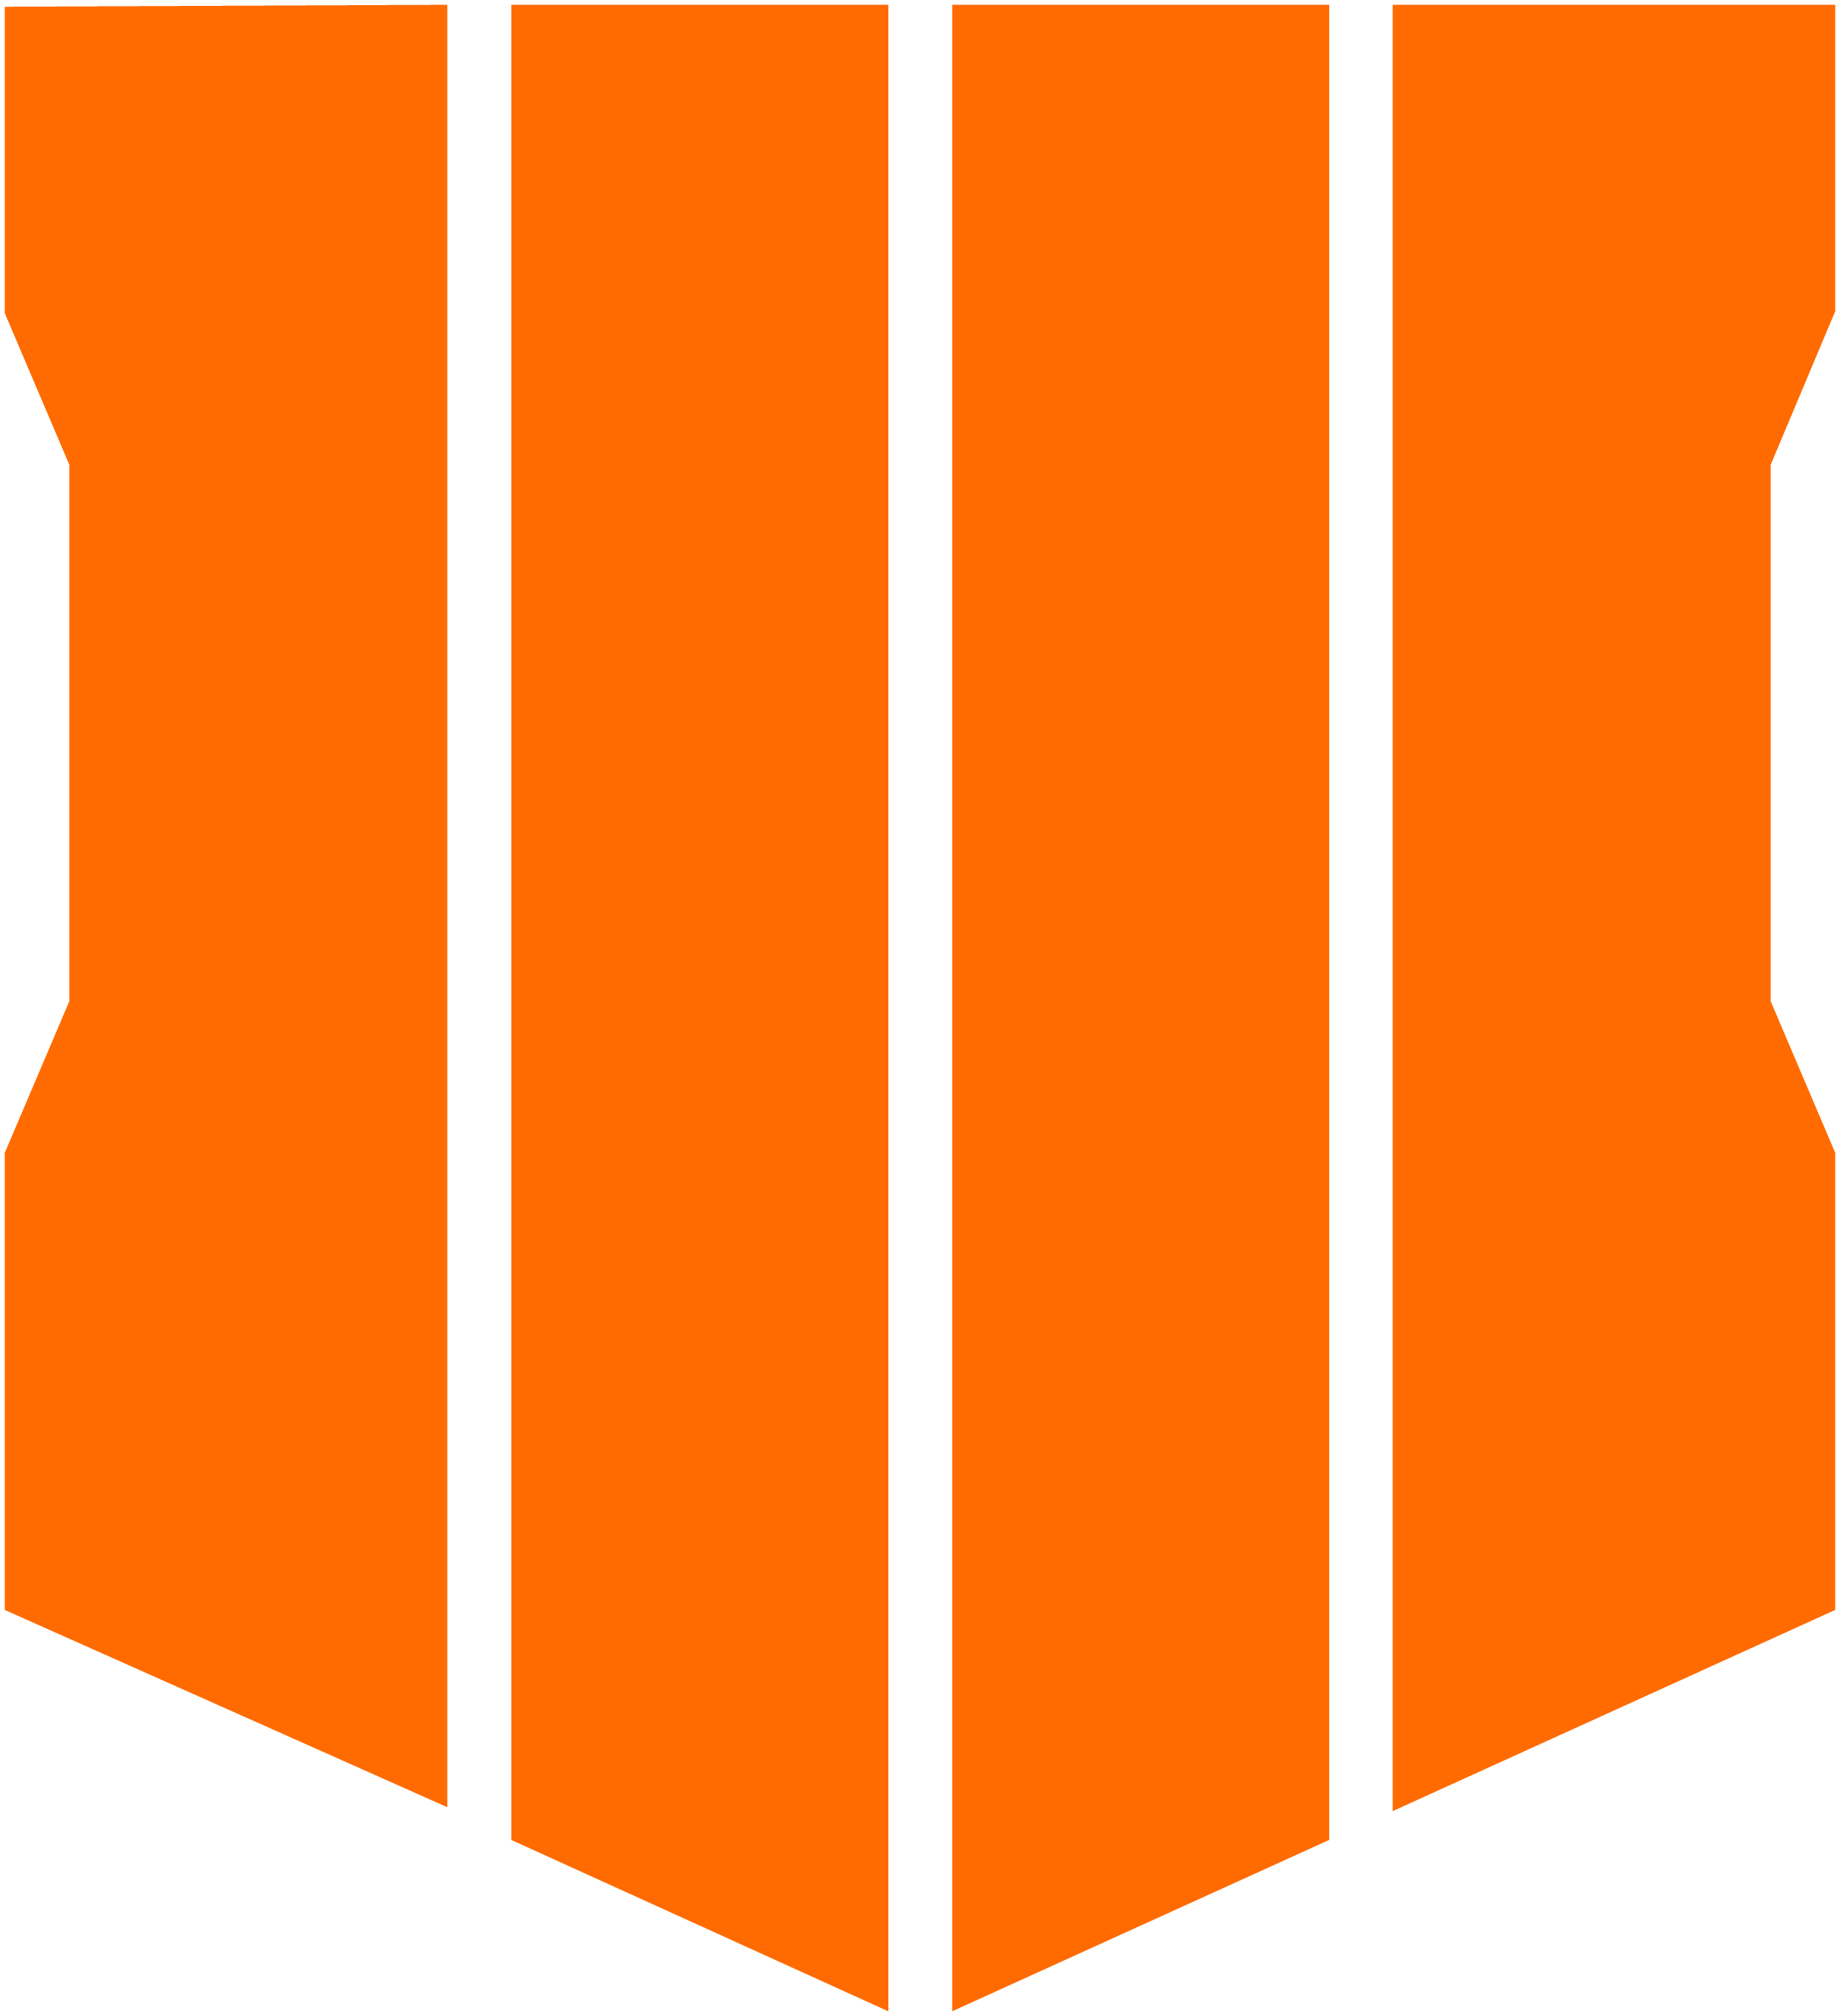 Call Of Duty Black Ops 4 Logo Png Image Call Of Duty Black Ops 4 Black Ops